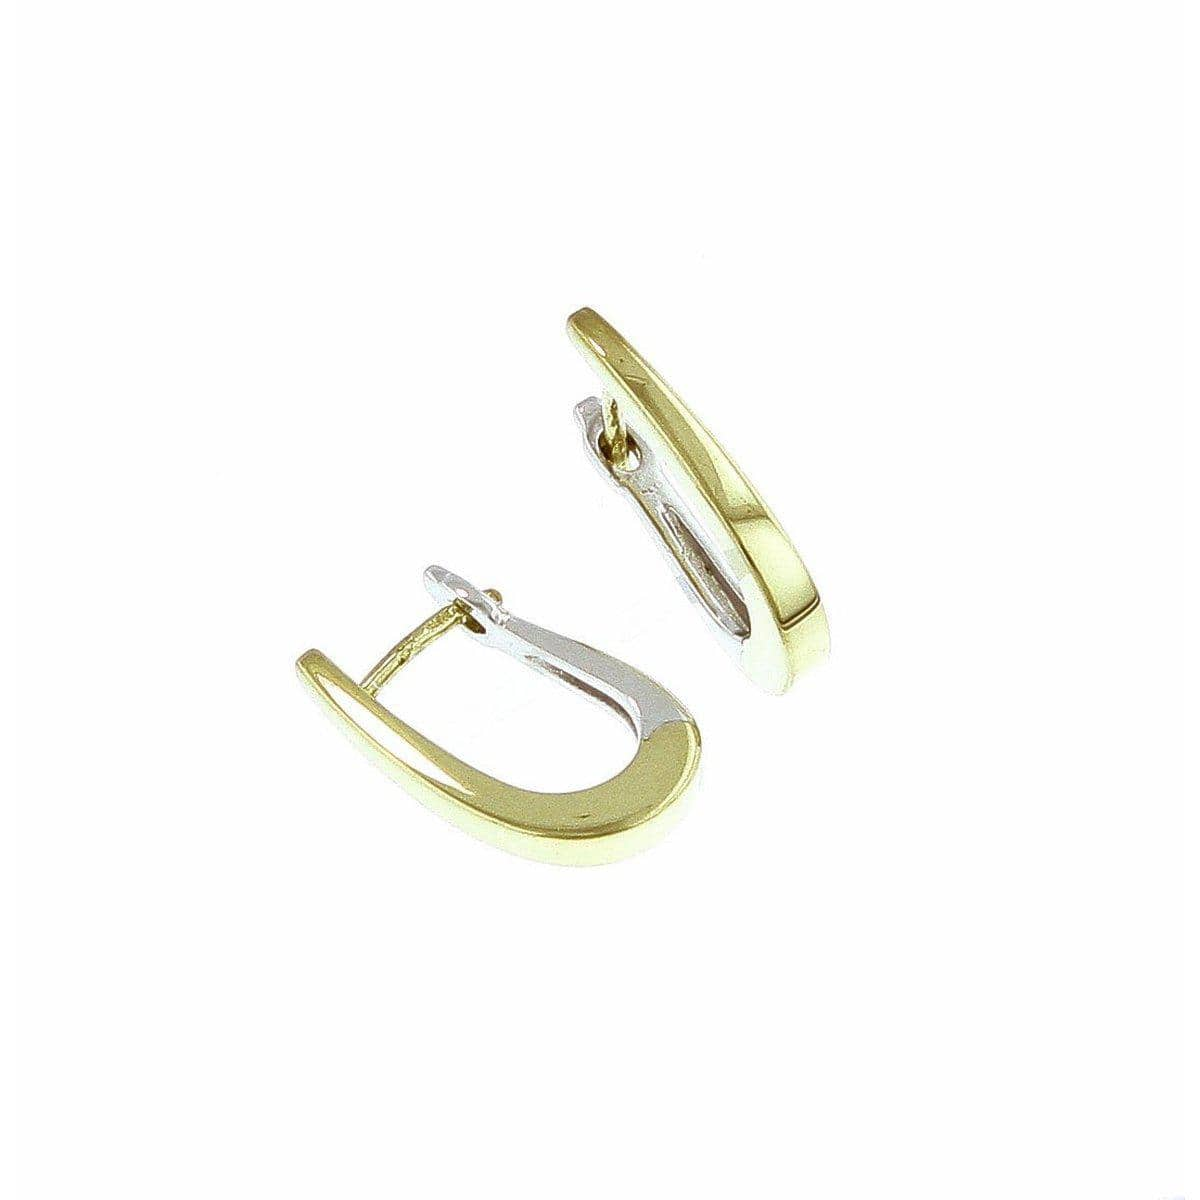 Yellow Gold Plated Sterling Silver Earrings - 06/07825-Y-Breuning-Renee Taylor Gallery